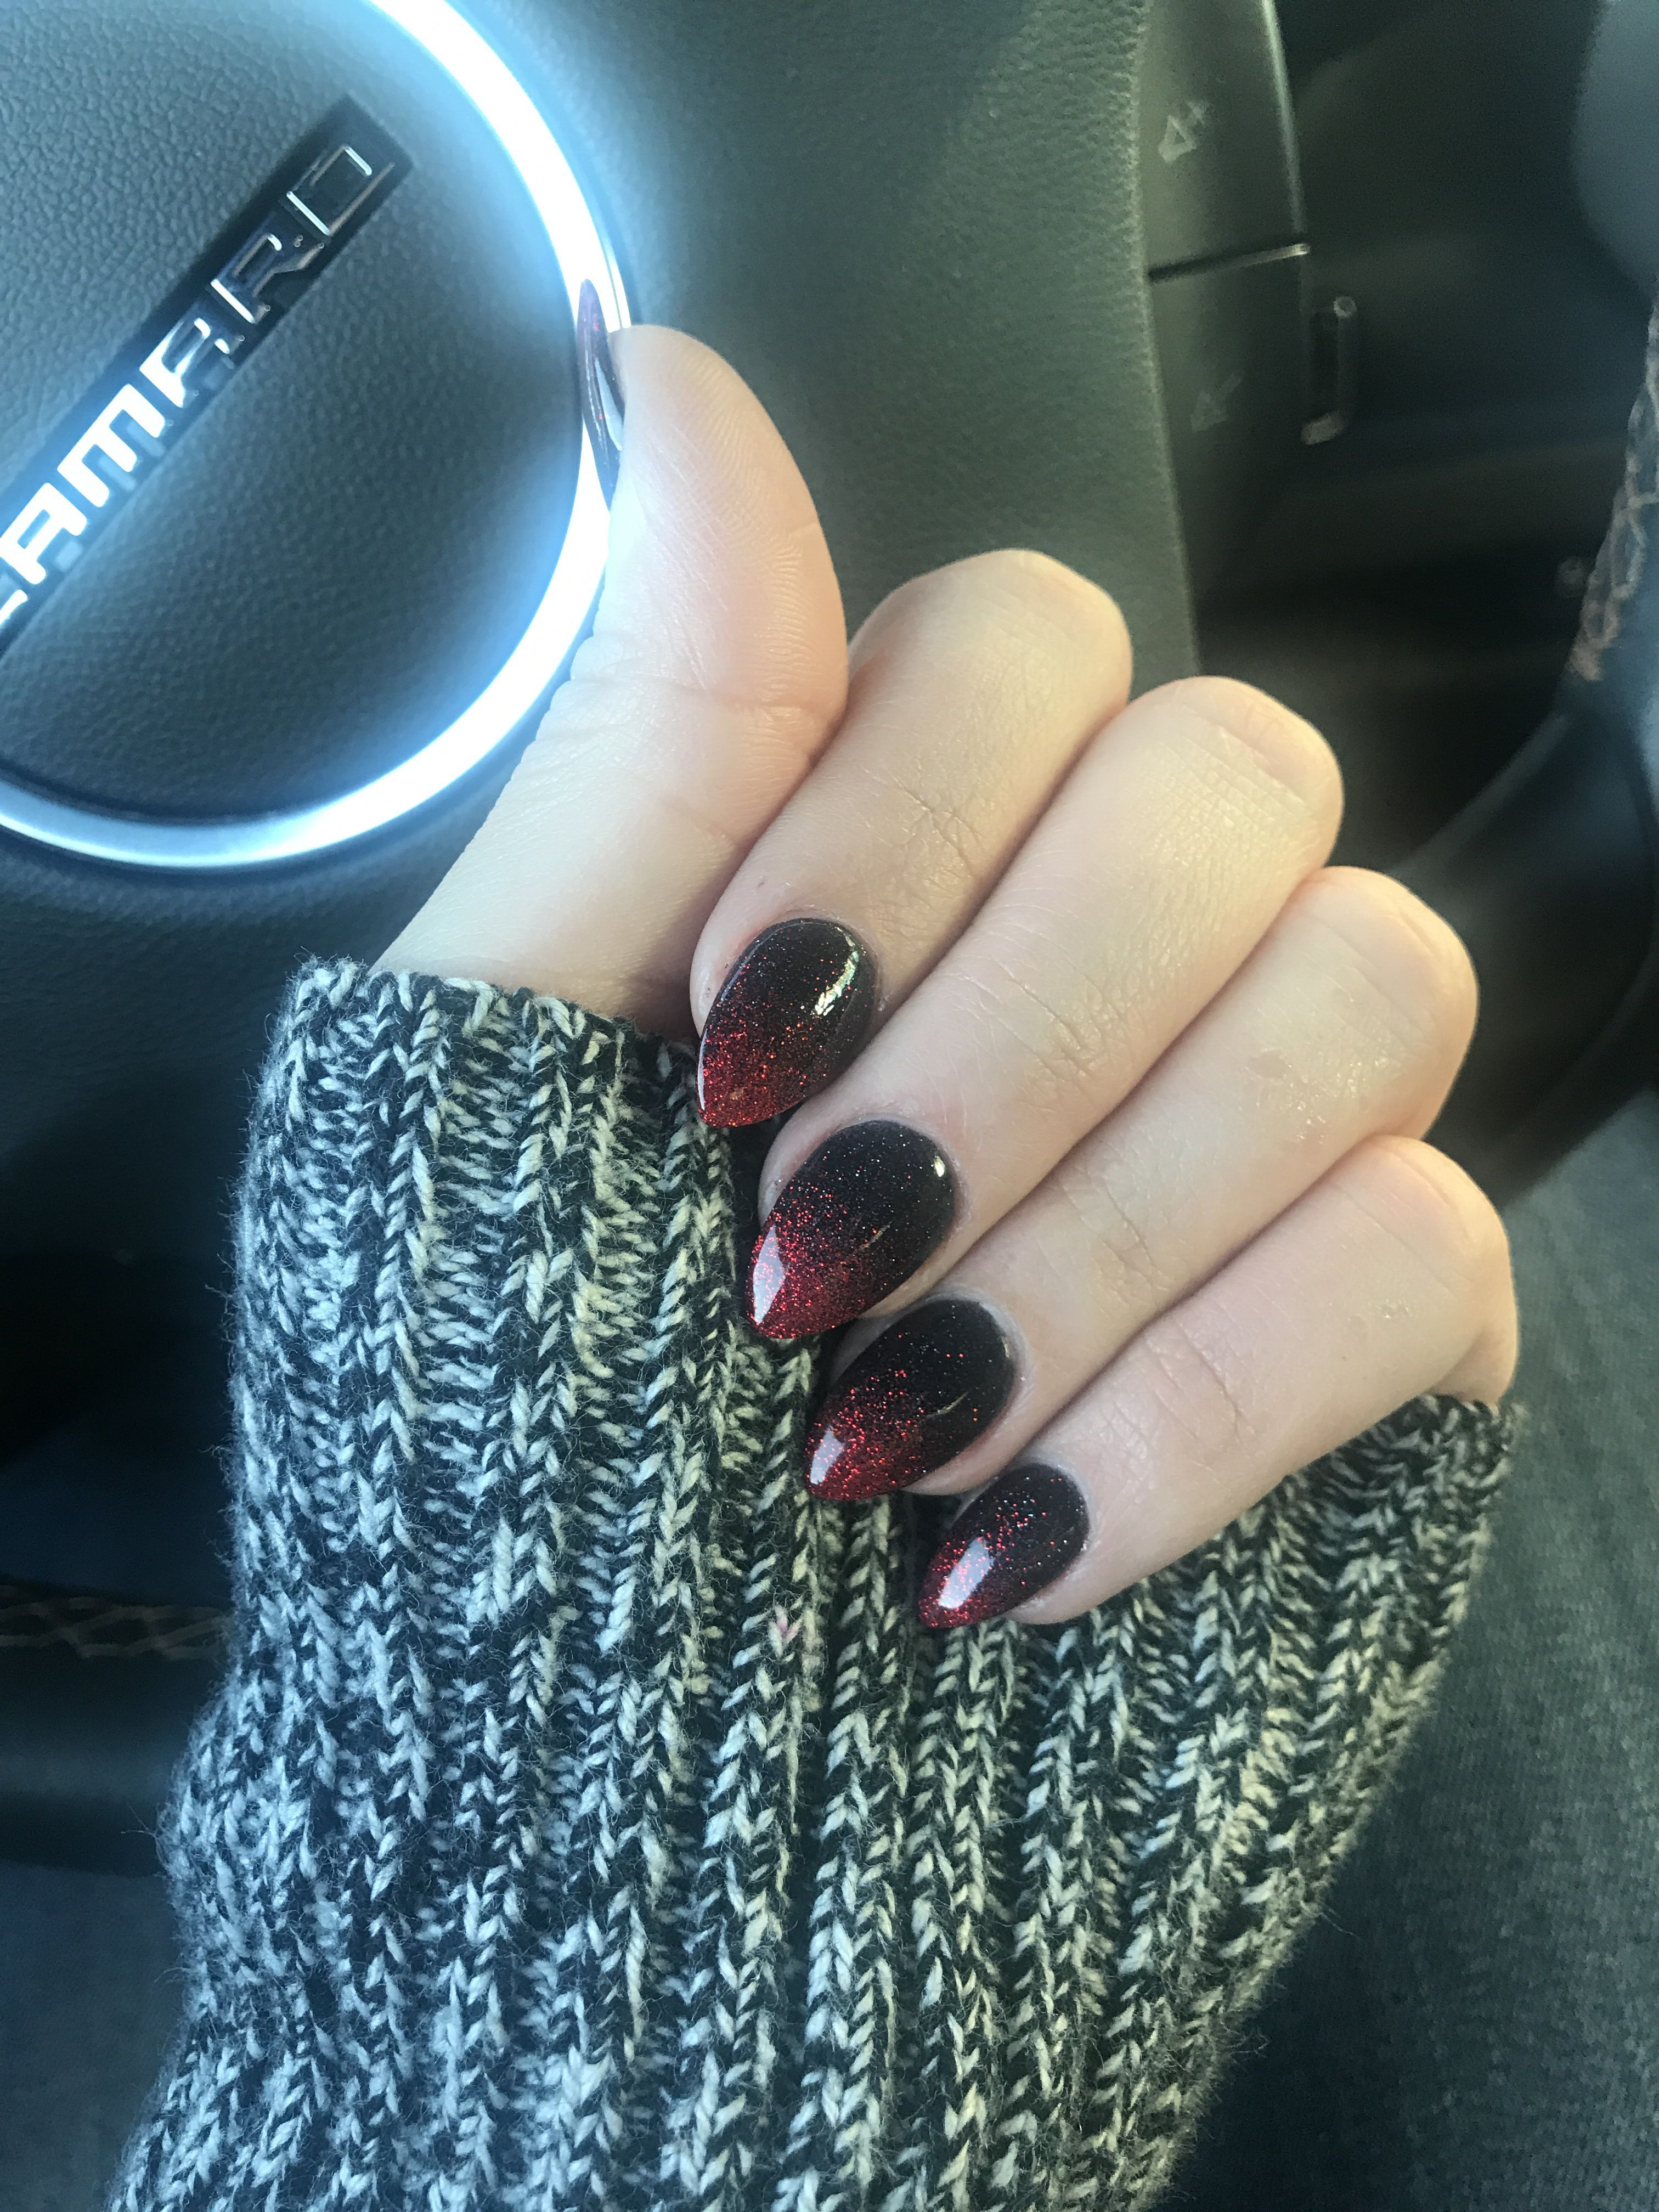 Ombre Red And Black Sparkling Nails Dip Powder Real Nails Coffin Almond Almondnails Almond Nails Designs Powder Nails Dip Powder